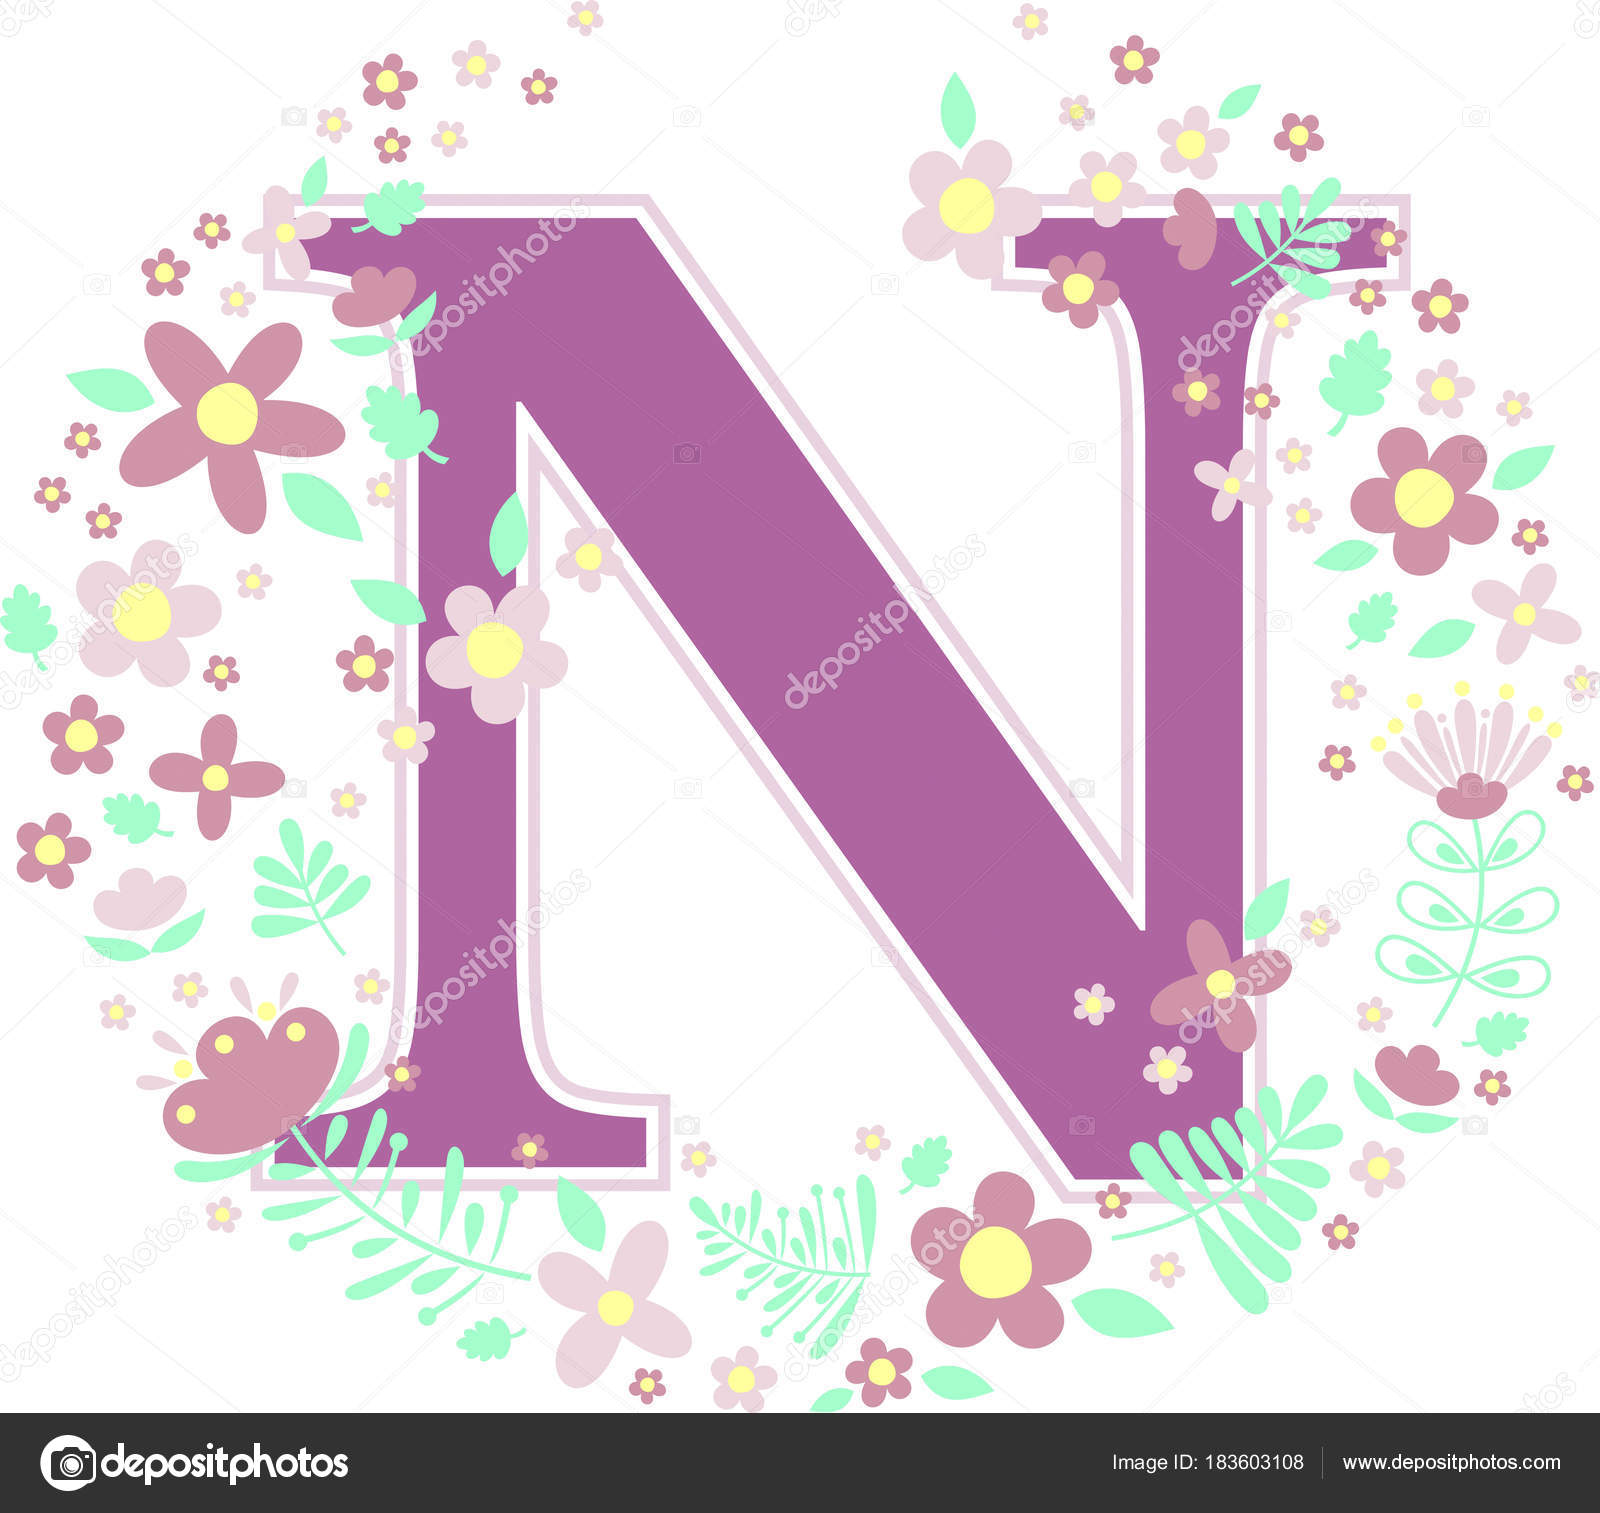 Initial letter decorative flowers design elements isolated white initial letter n with decorative flowers and design elements isolated on white background can be used for baby name nursery decoration spring themes or junglespirit Image collections